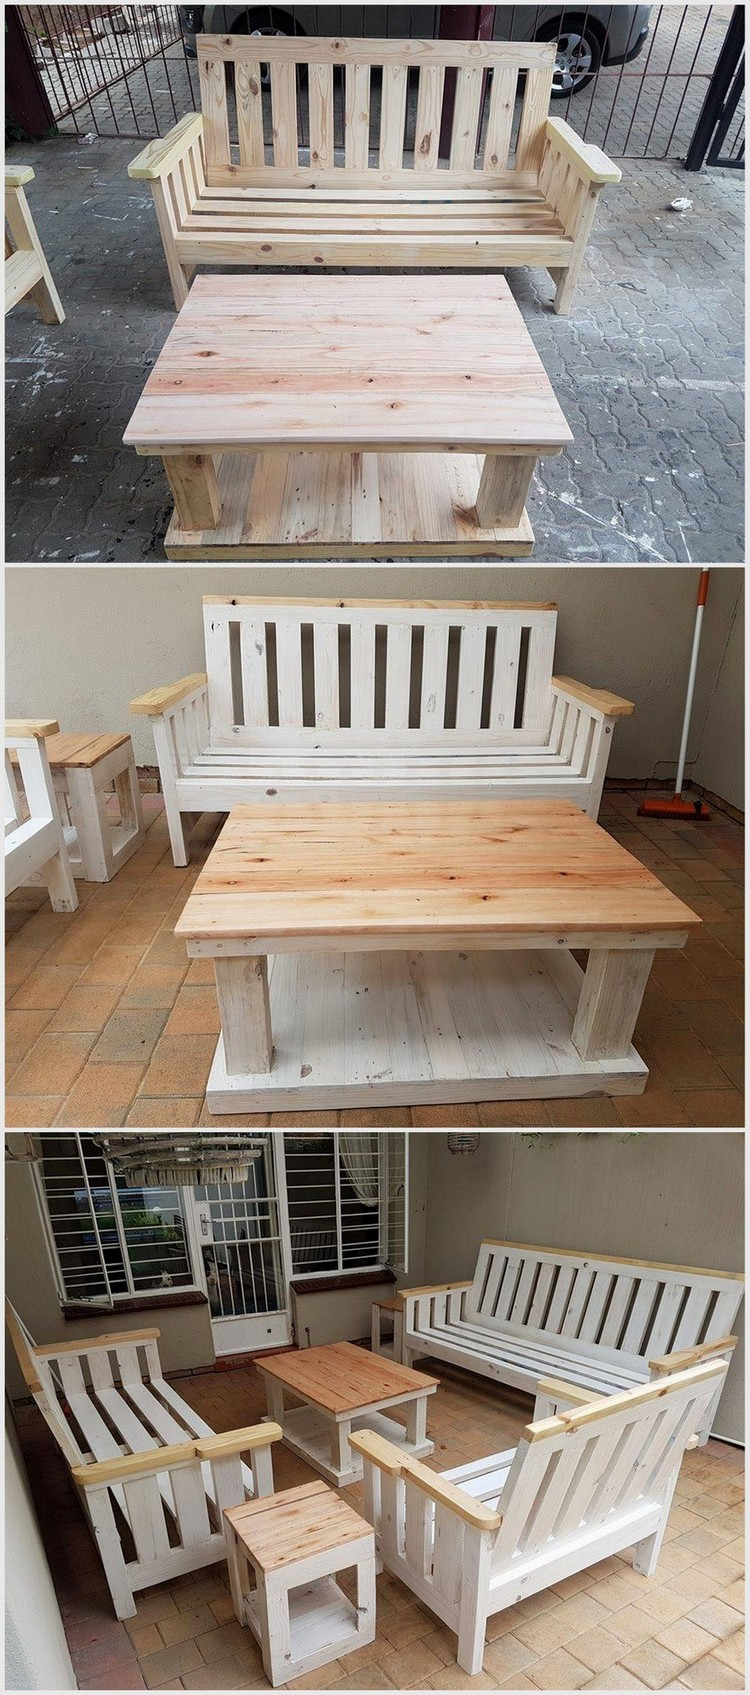 Excellent Ideas With Used Wood Pallets Pallet Wood Projects